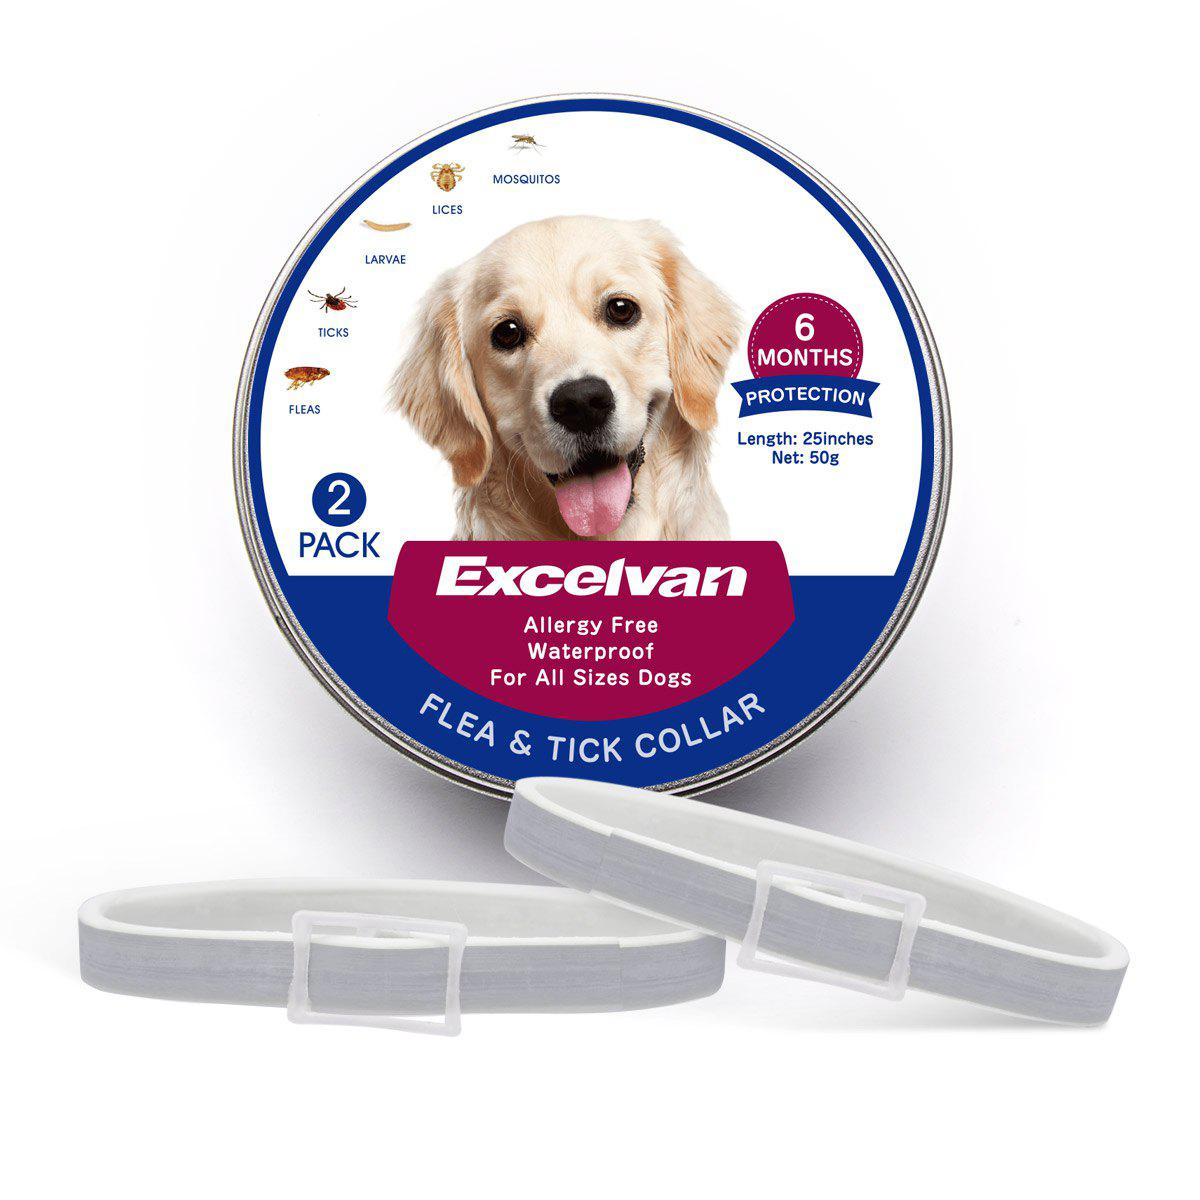 flea and tick collar for dogs-2 pack